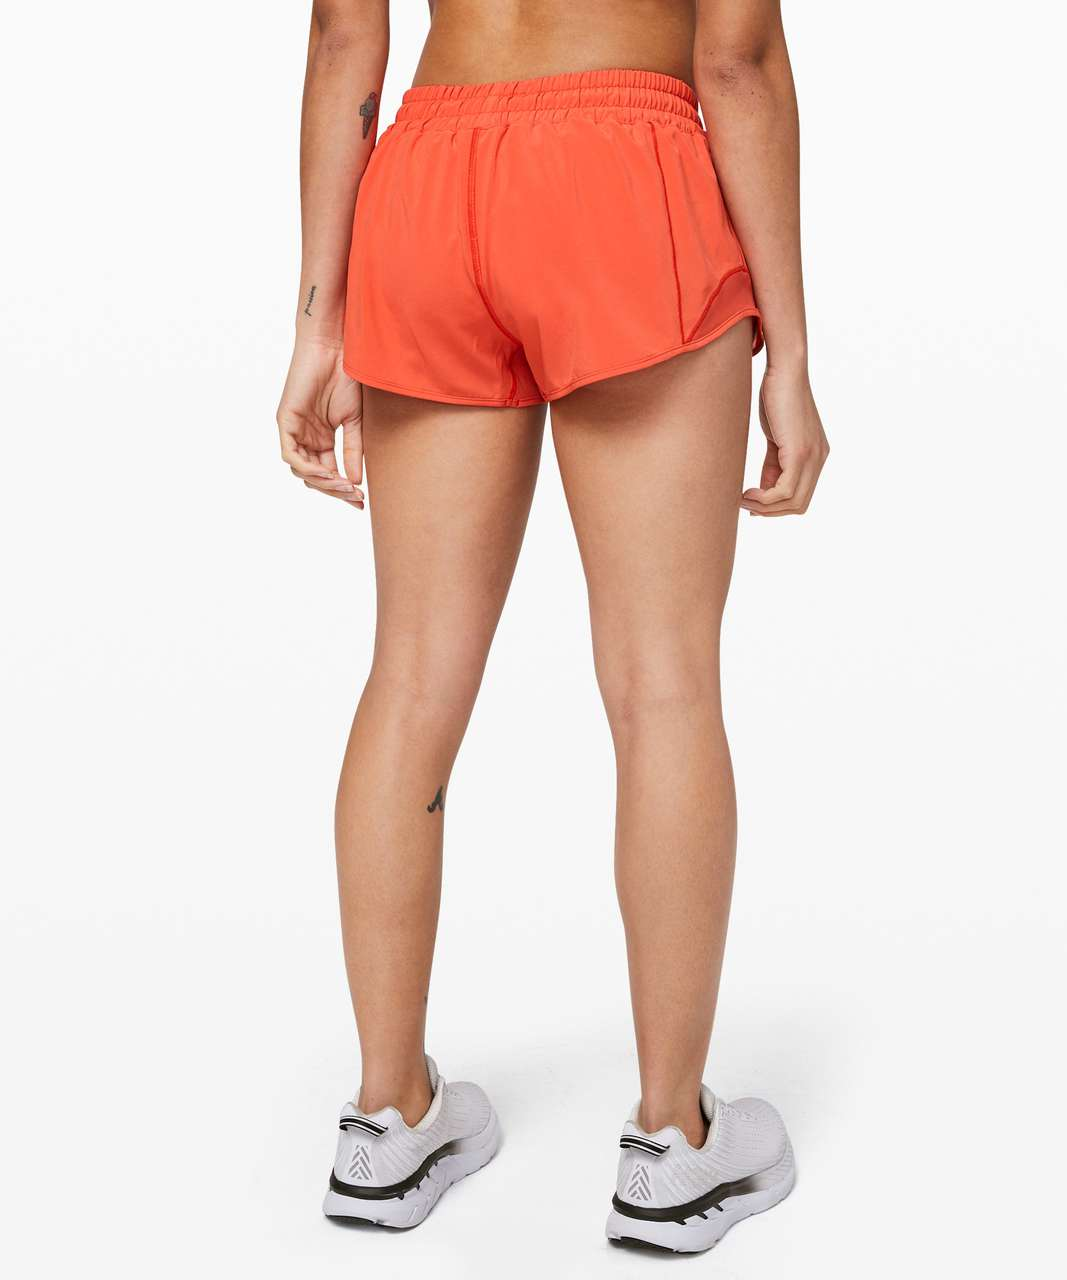 "Lululemon Hotty Hot Short II *2.5"" - Hot Sunset"